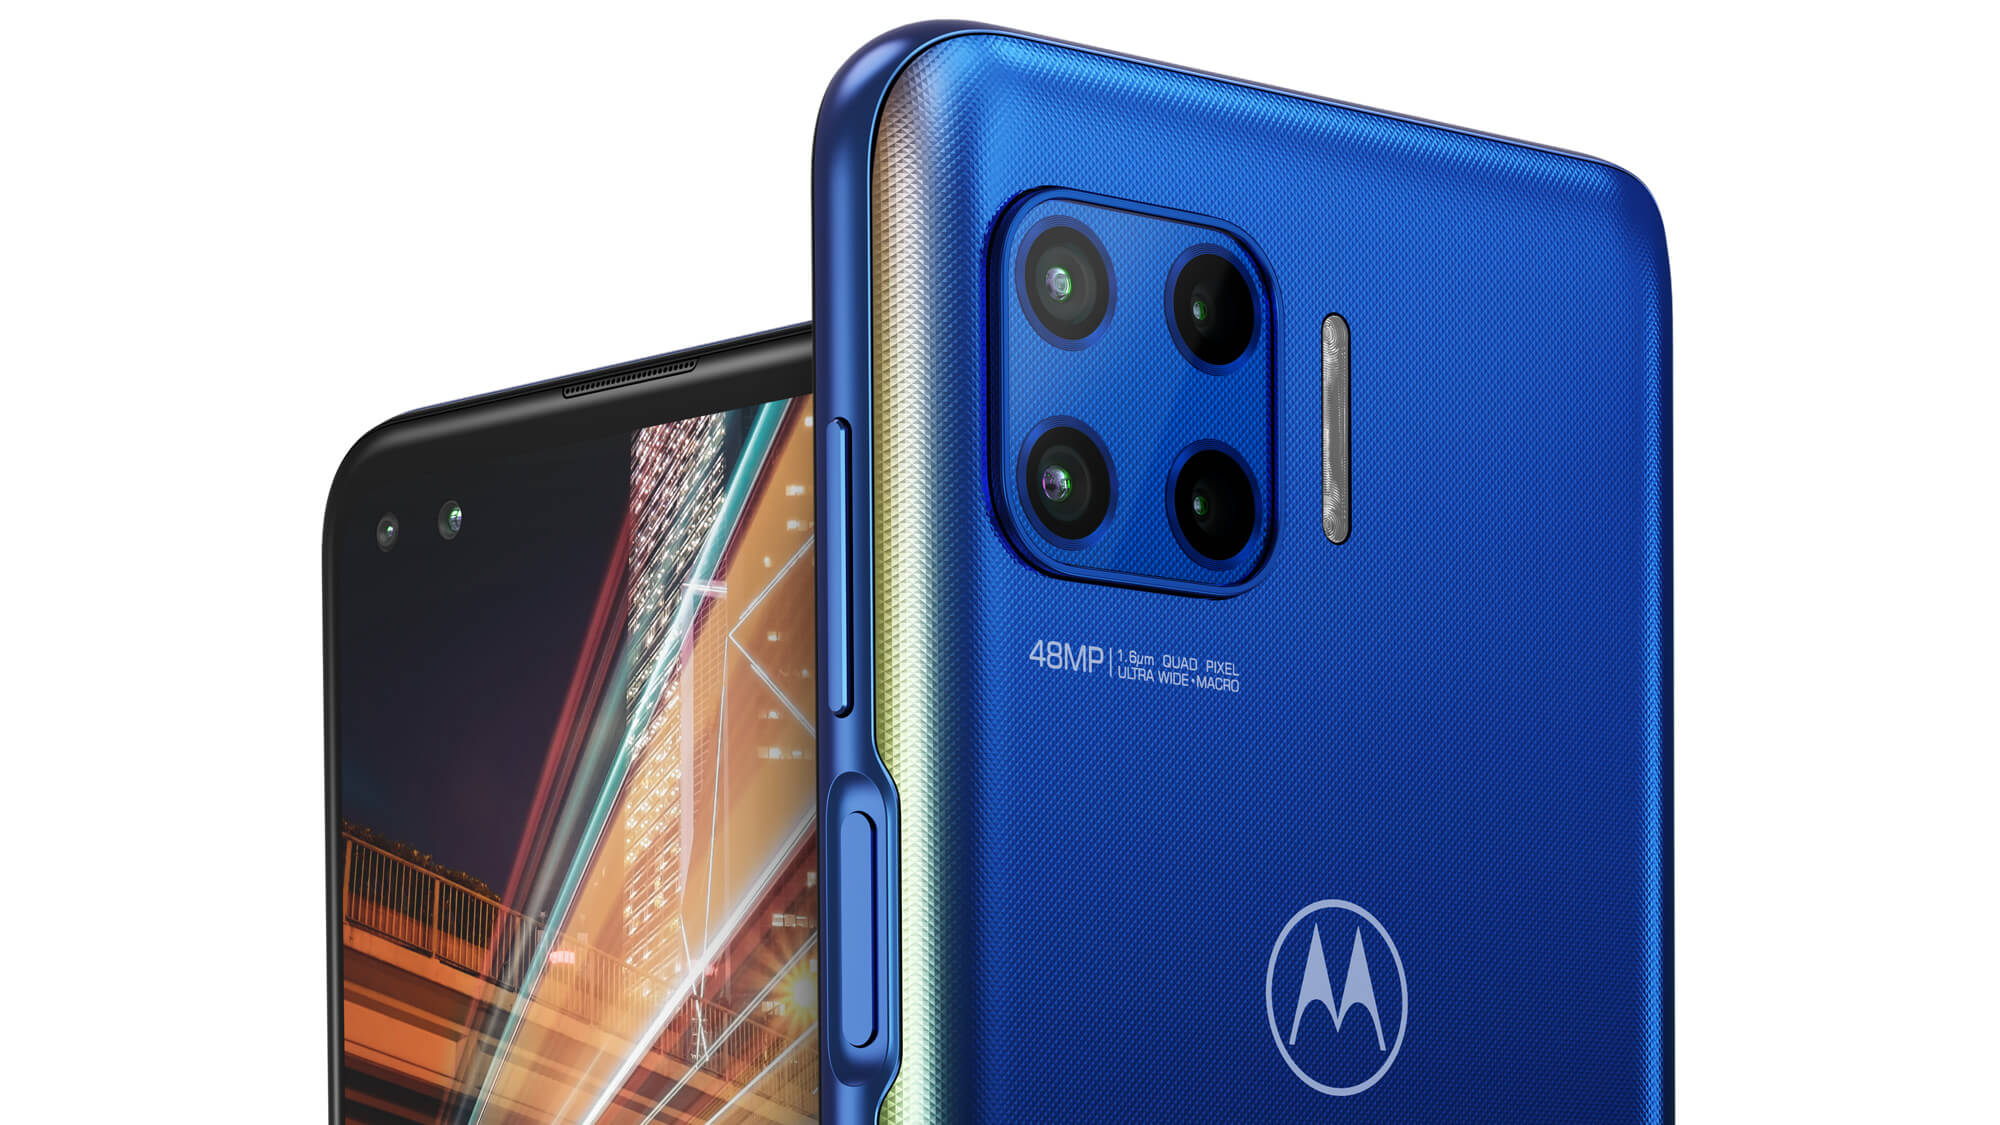 With the four cameras available on the Motorola Moto G 5G ...